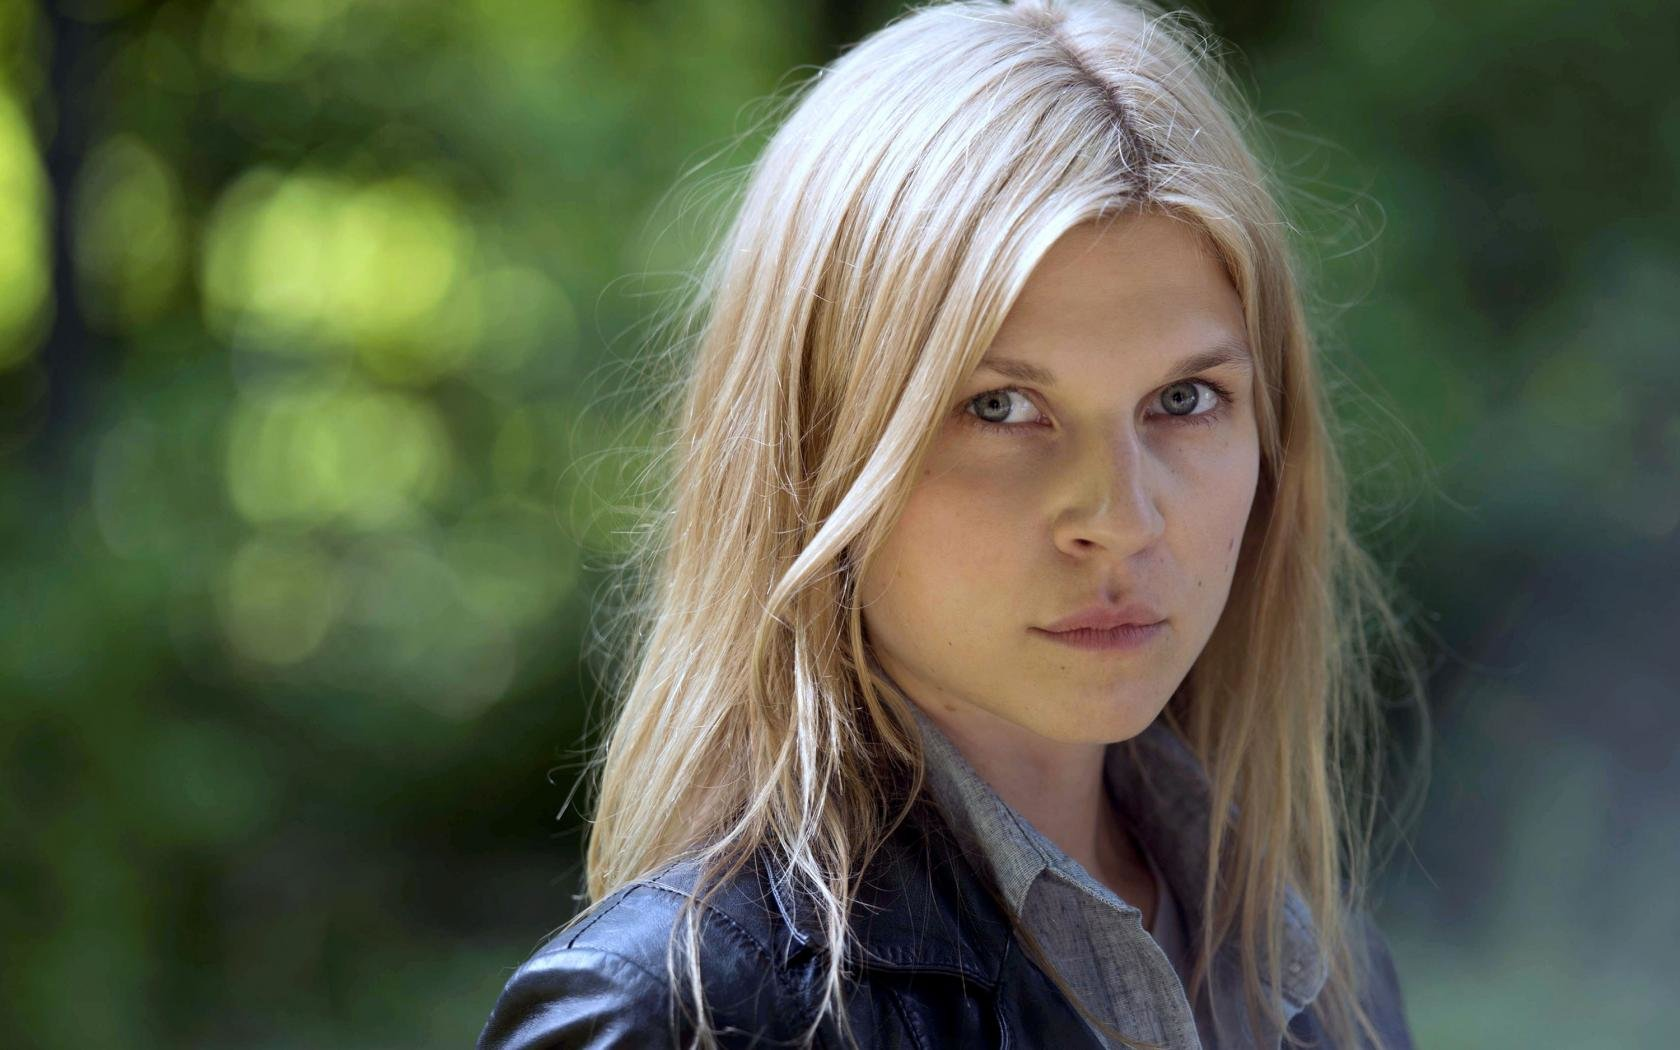 Free Clemence Poesy high quality background ID:9908 for hd 1680x1050 desktop